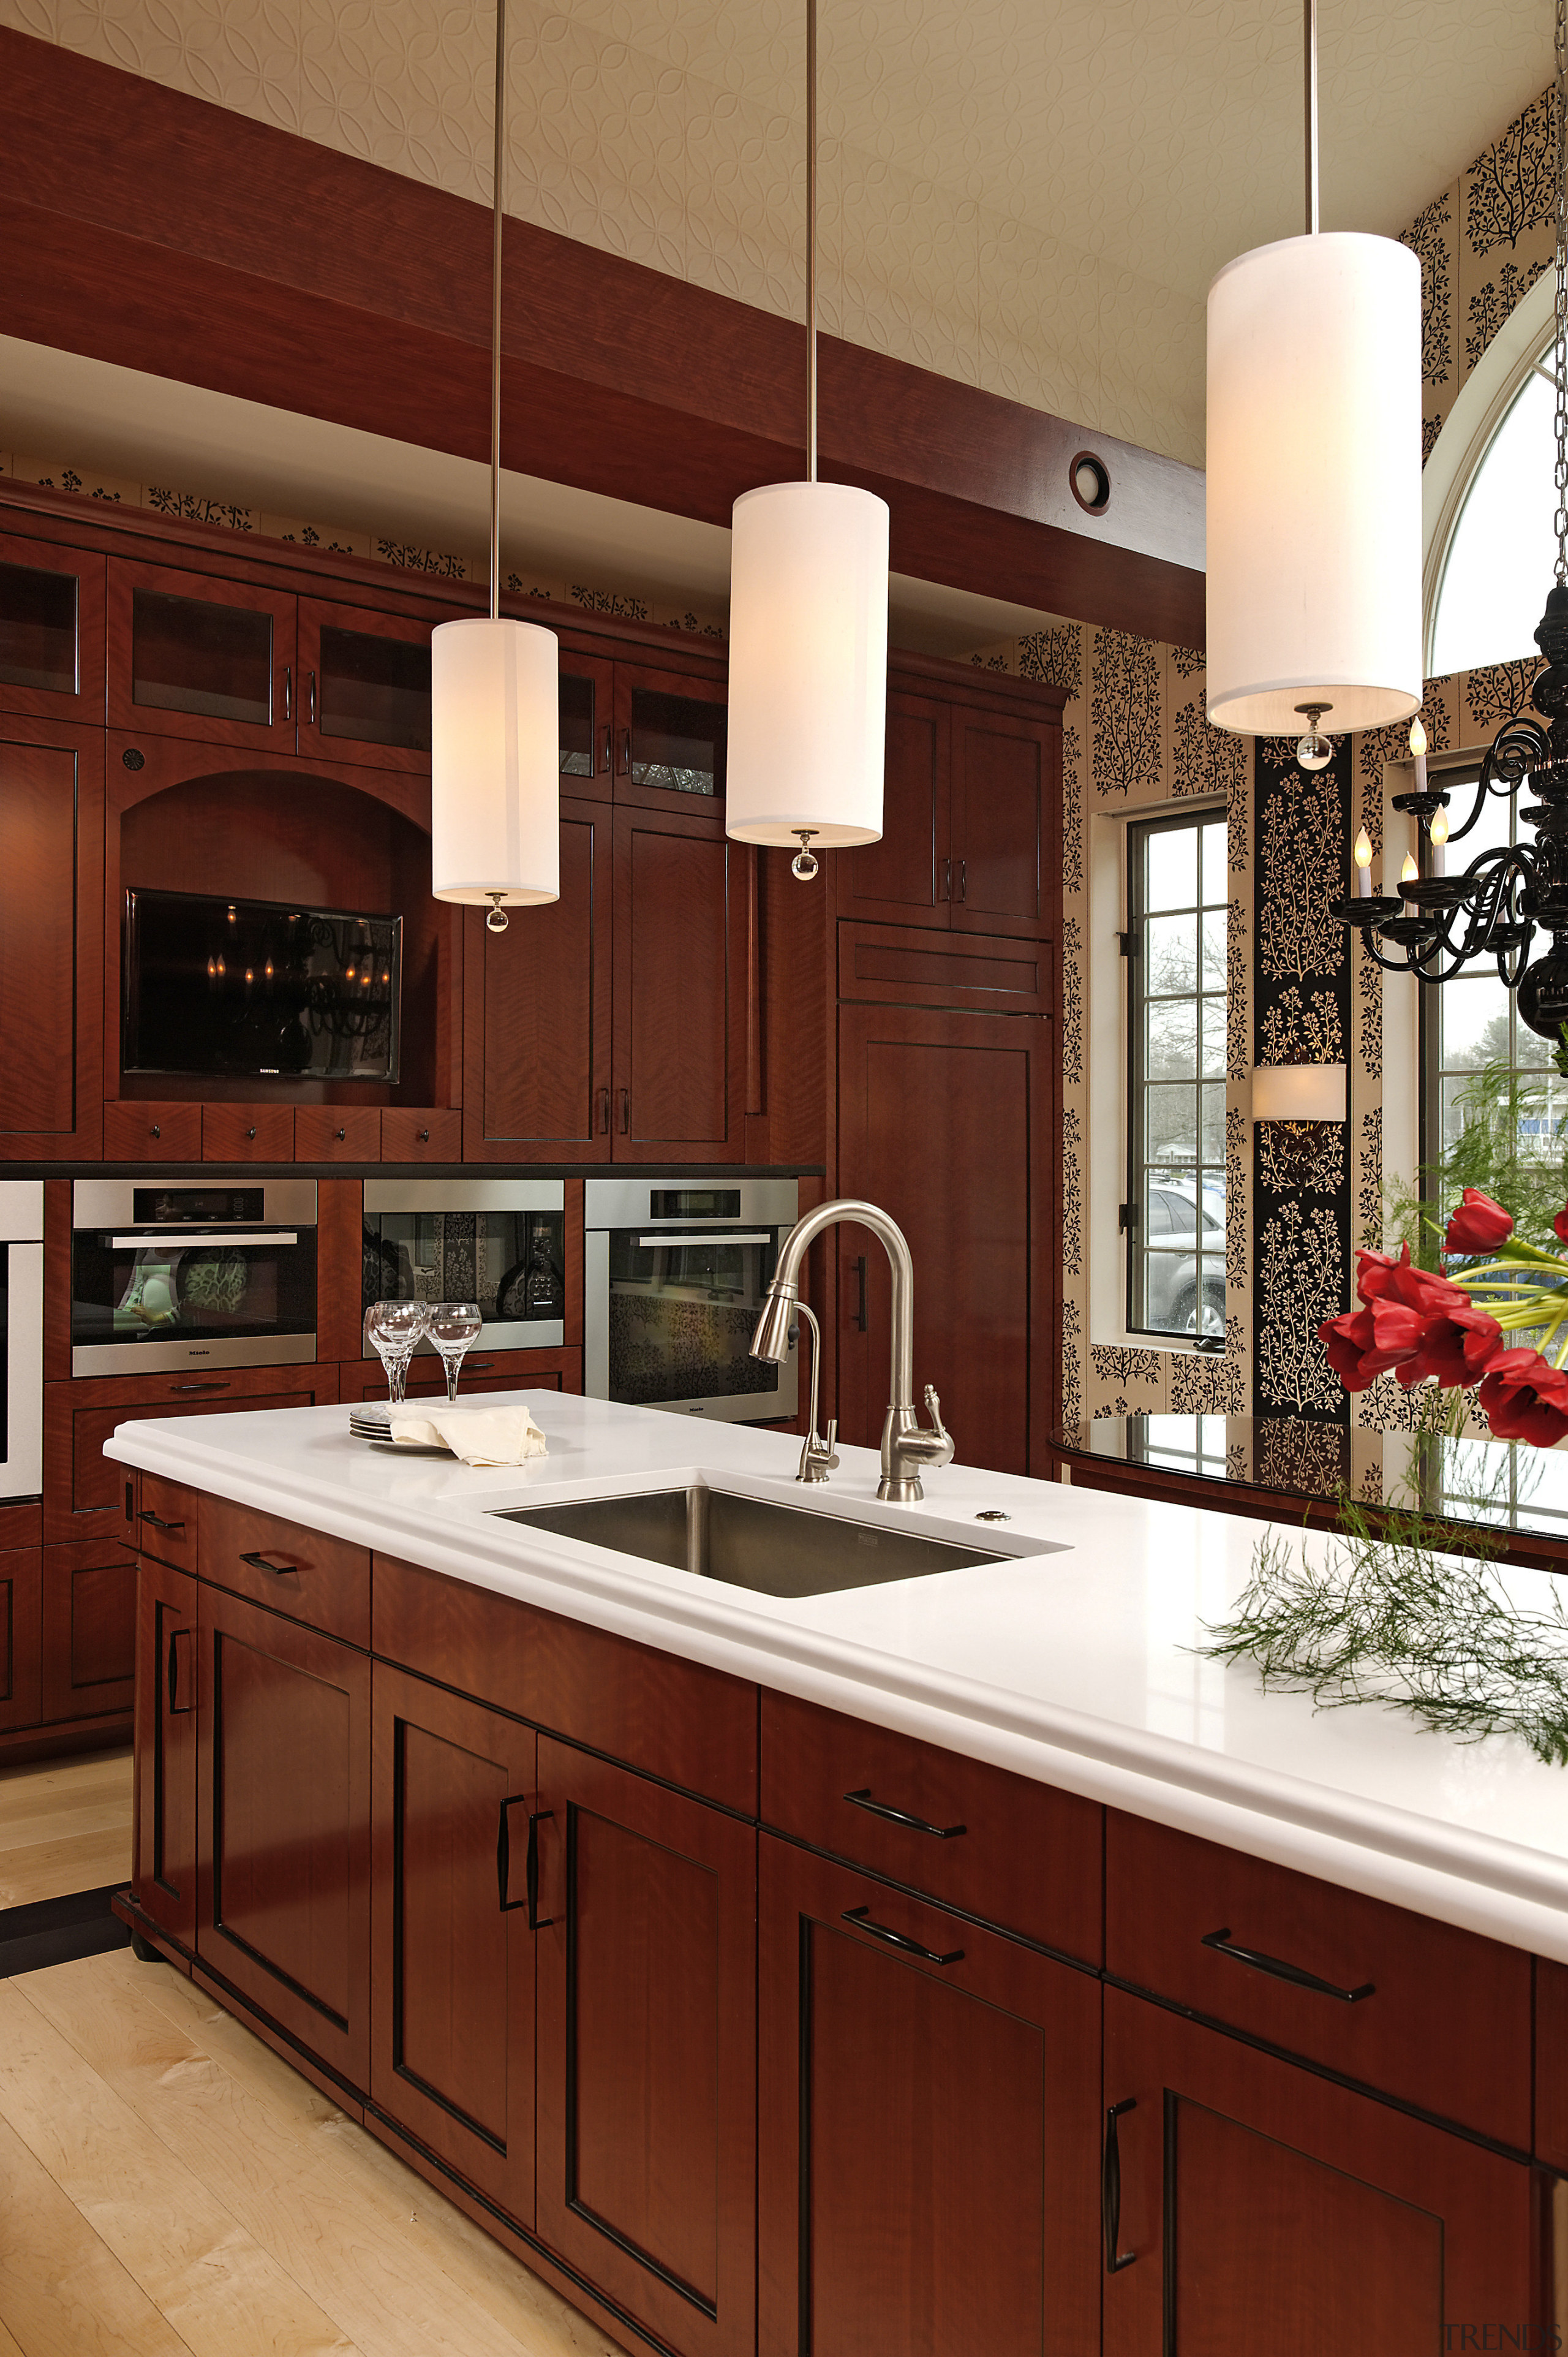 Pendants with fabric shades cast a soft light cabinetry, countertop, cuisine classique, interior design, kitchen, under cabinet lighting, red